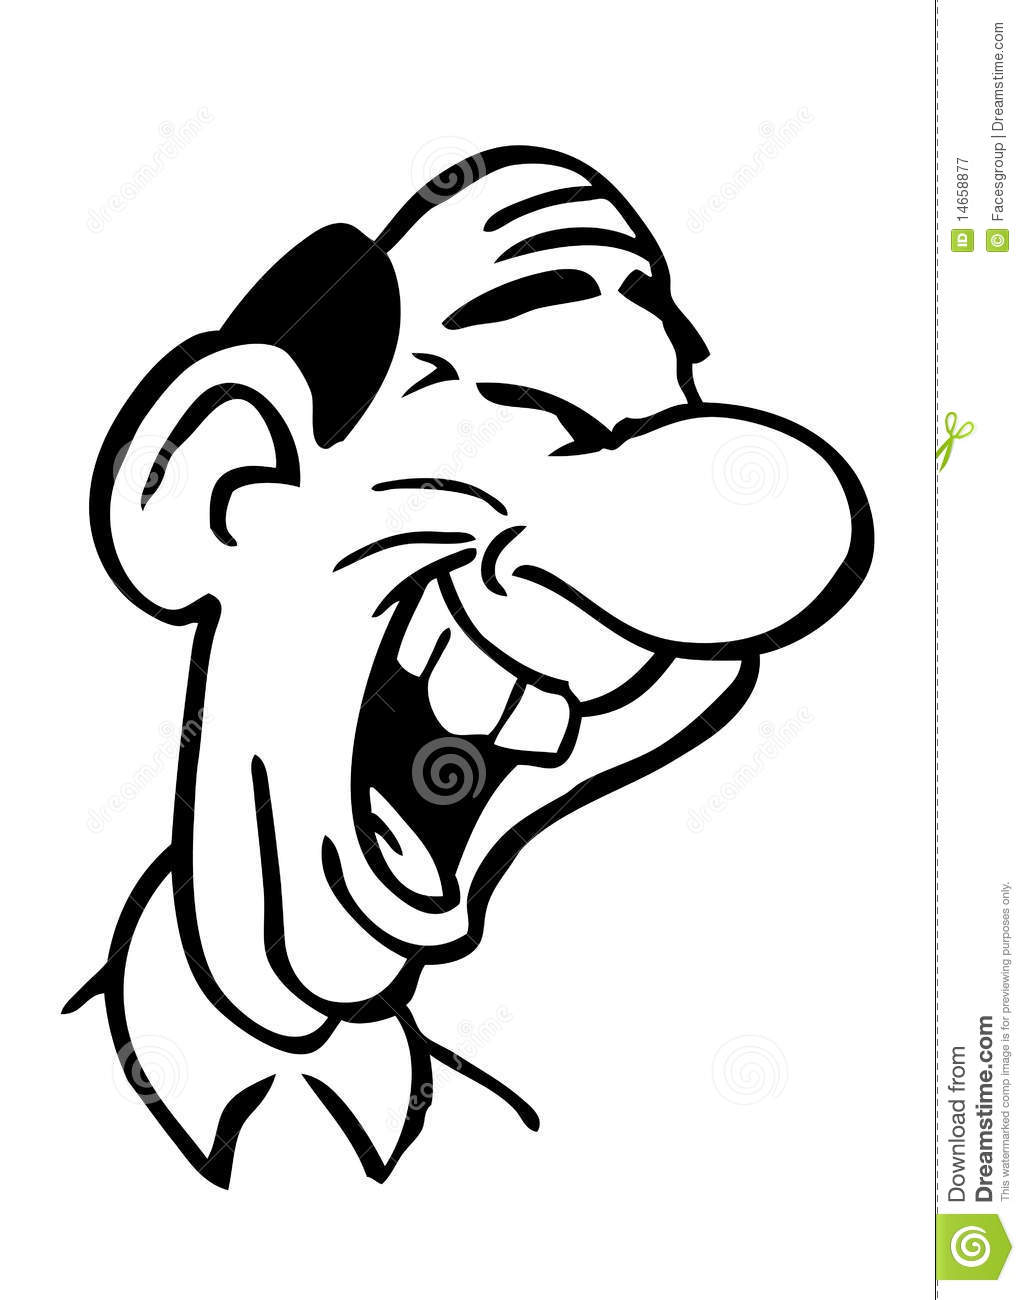 Cartoon Drawing Laughing Man Stock Vector - Illustration ...